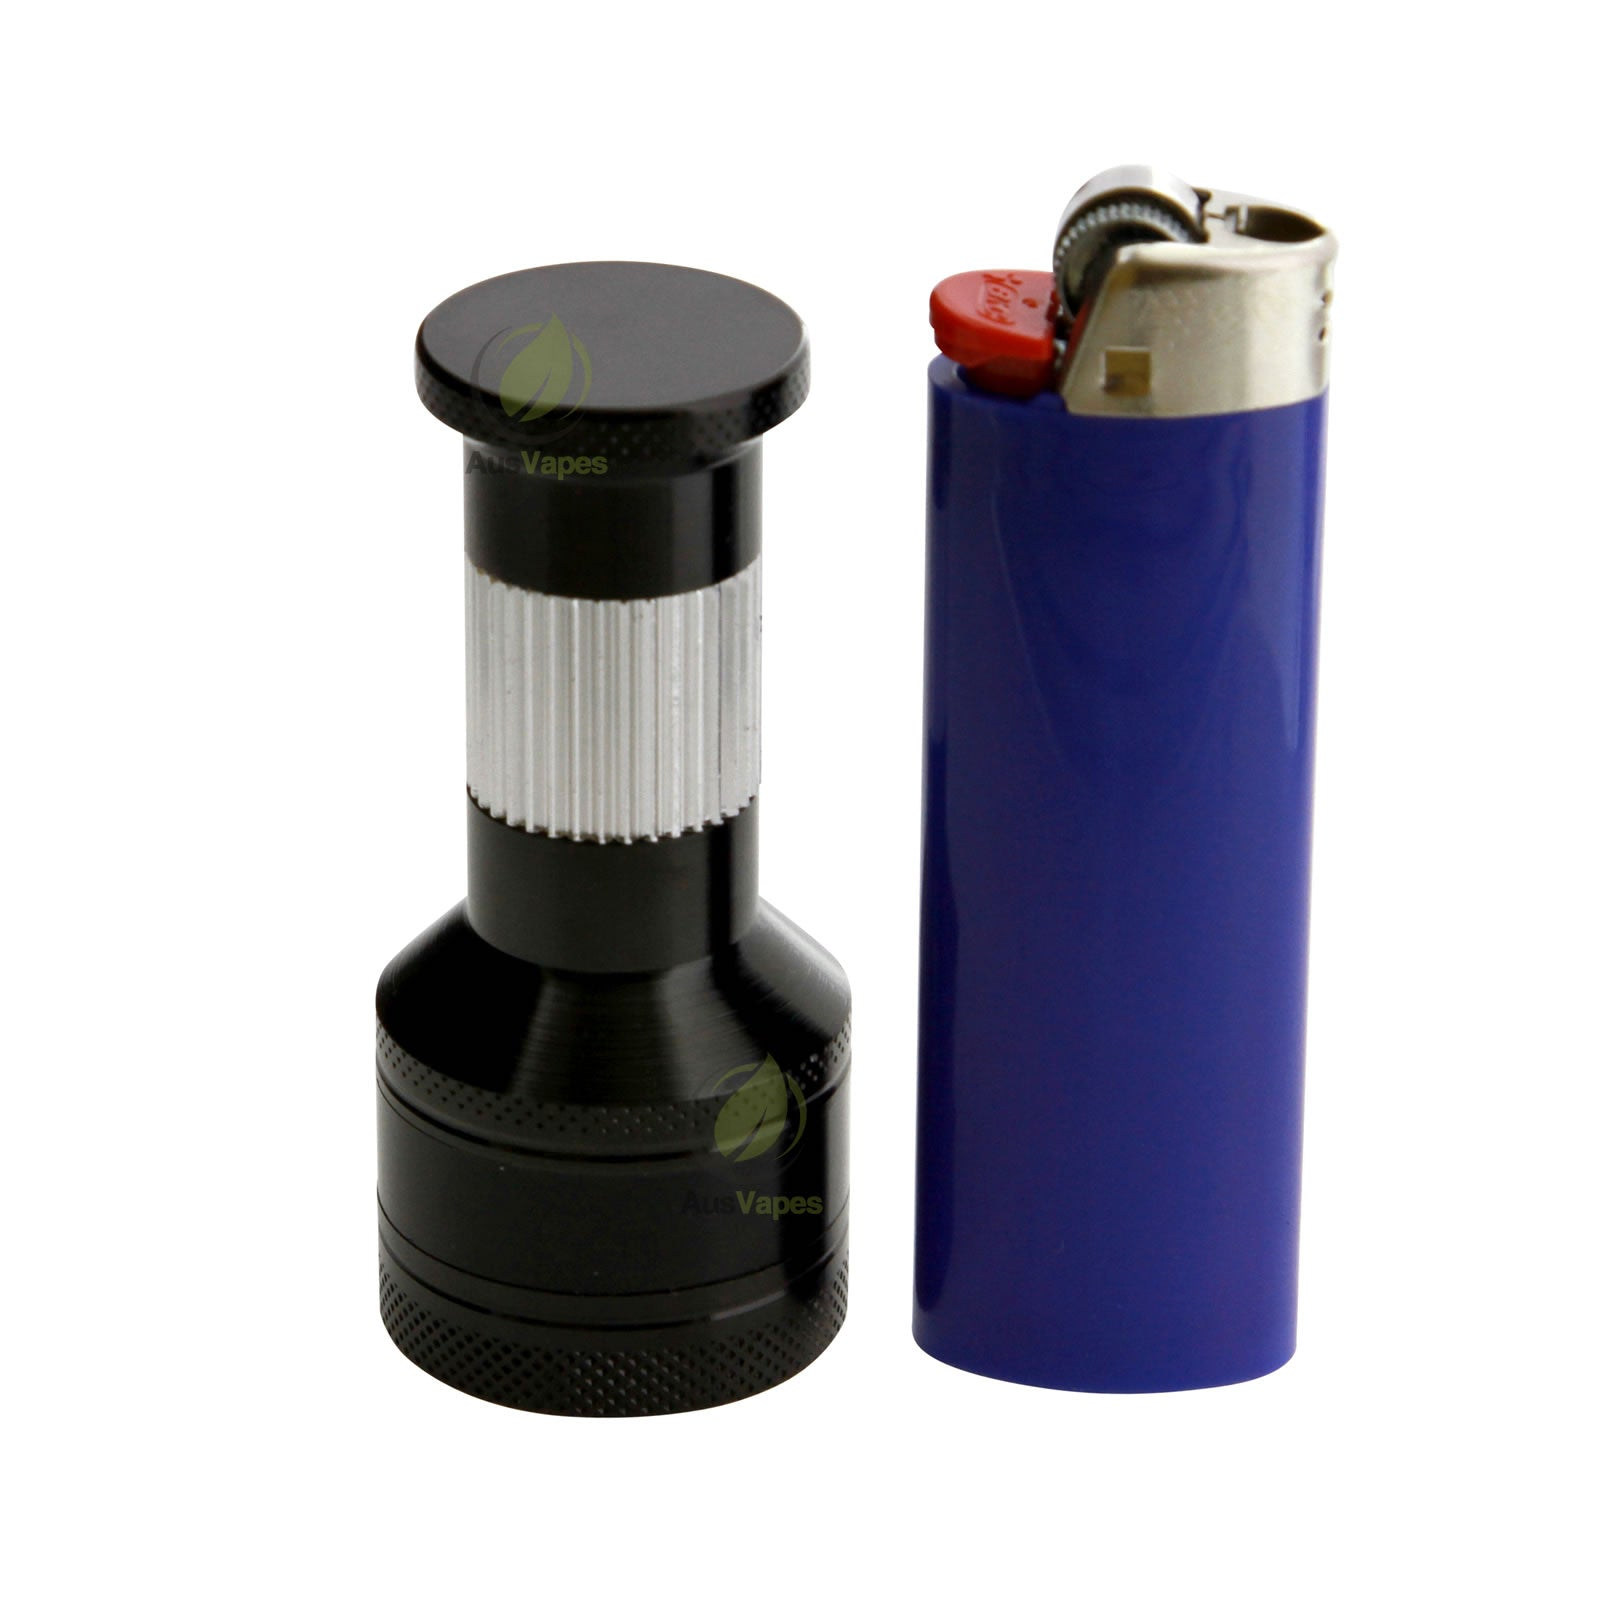 DISCONTINUED Herb Grinder/Pollen Press Combo - 30mm